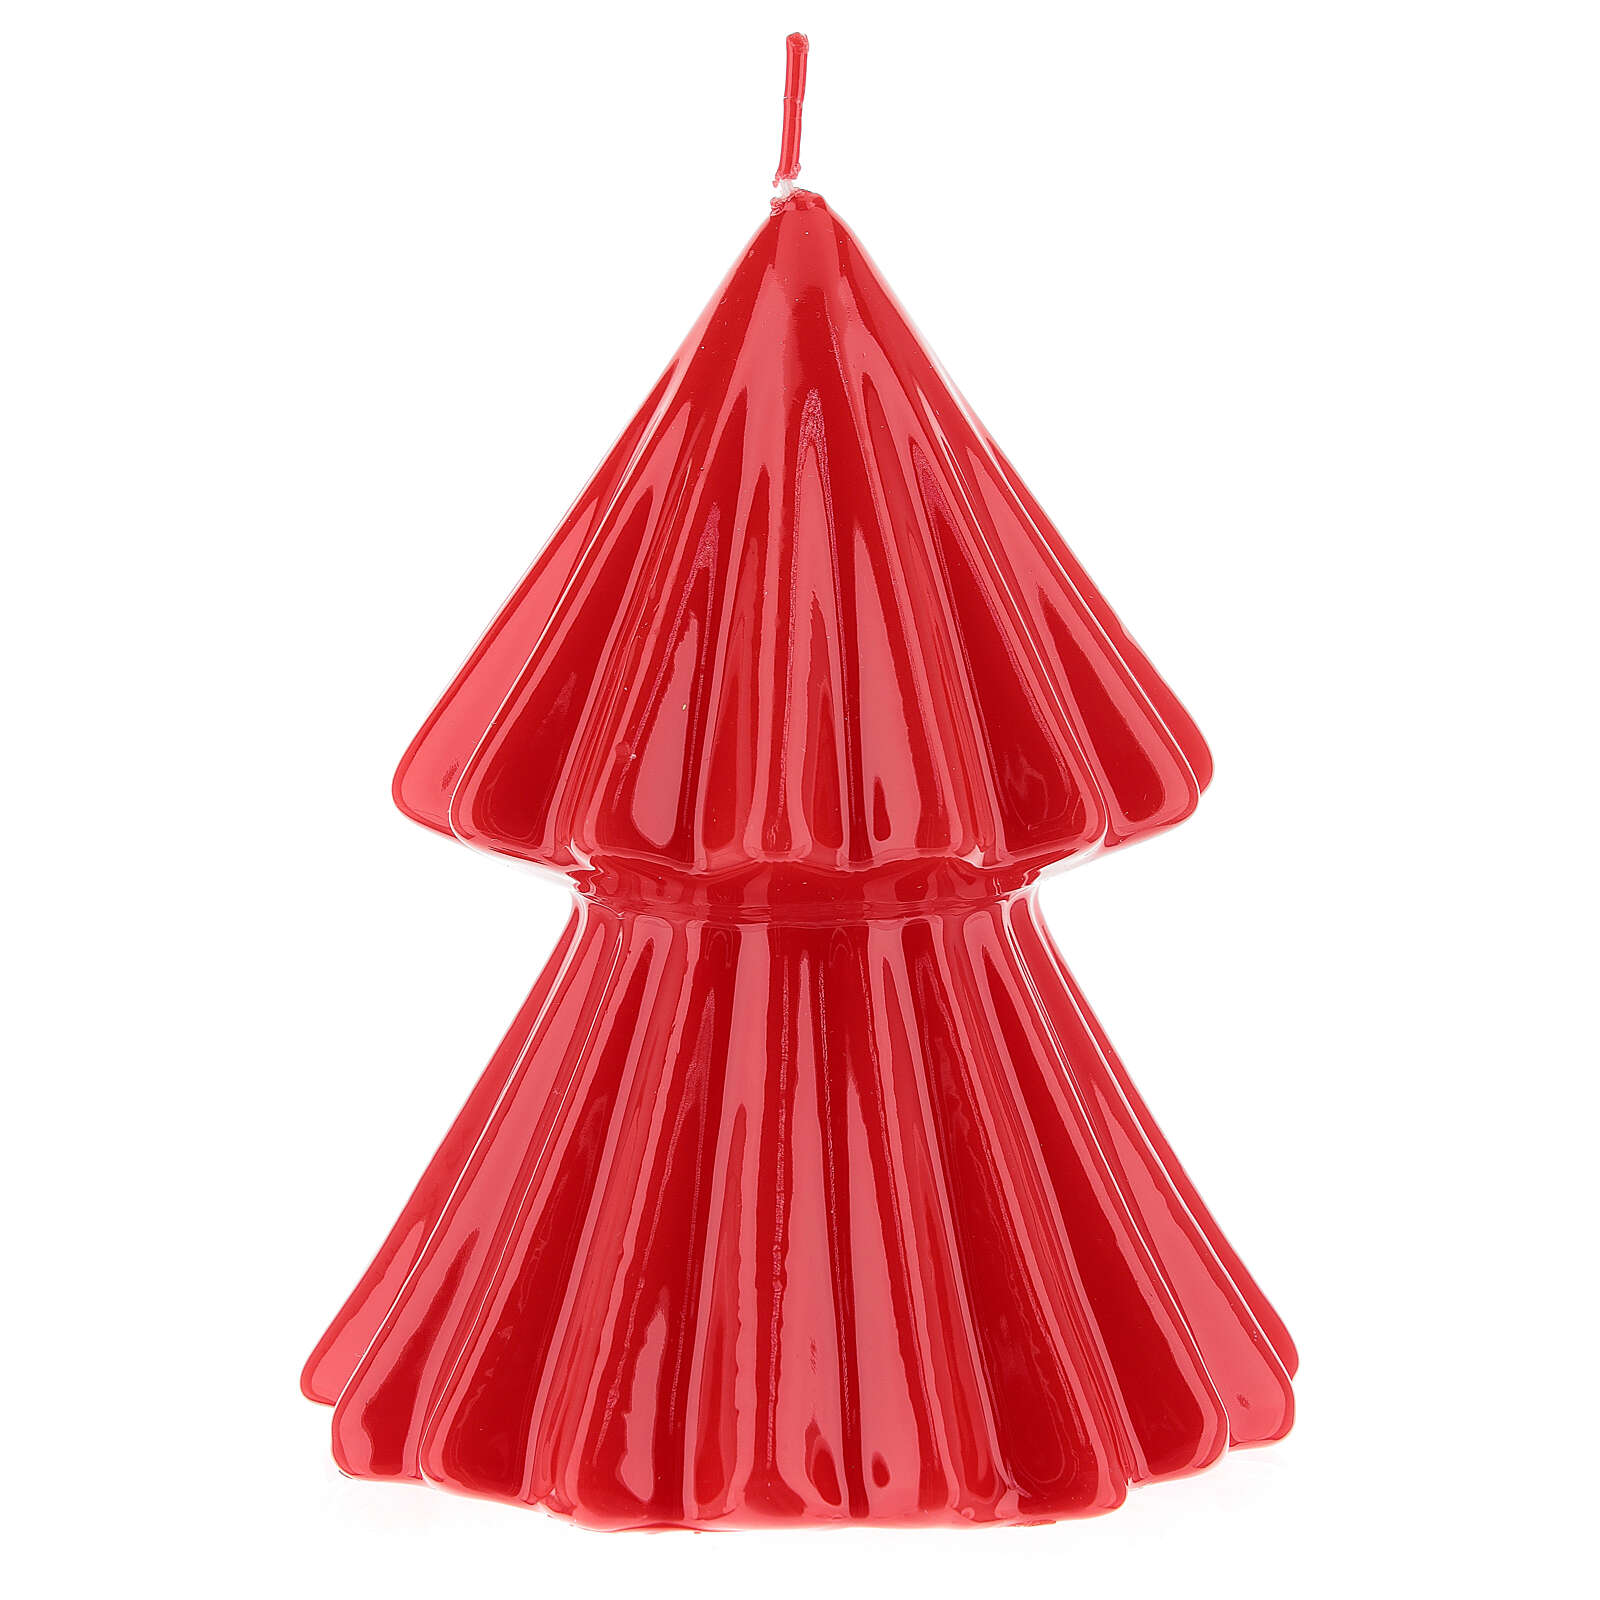 Red Christmas tree candle Tokyo 5 in 3